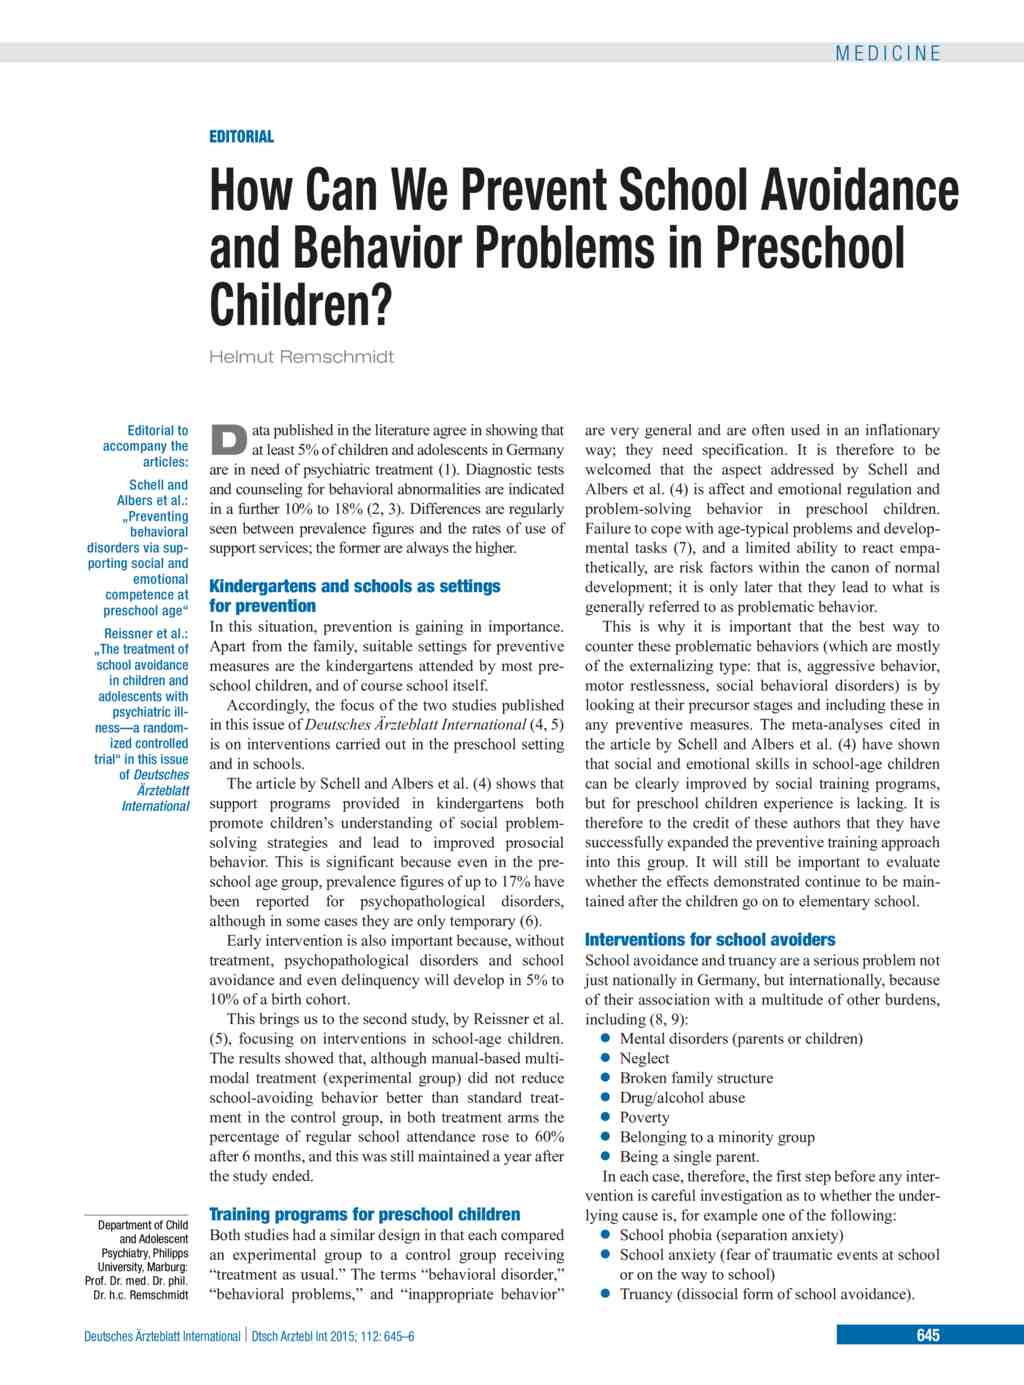 How Can We Prevent School Avoidance and Behavior Problems in